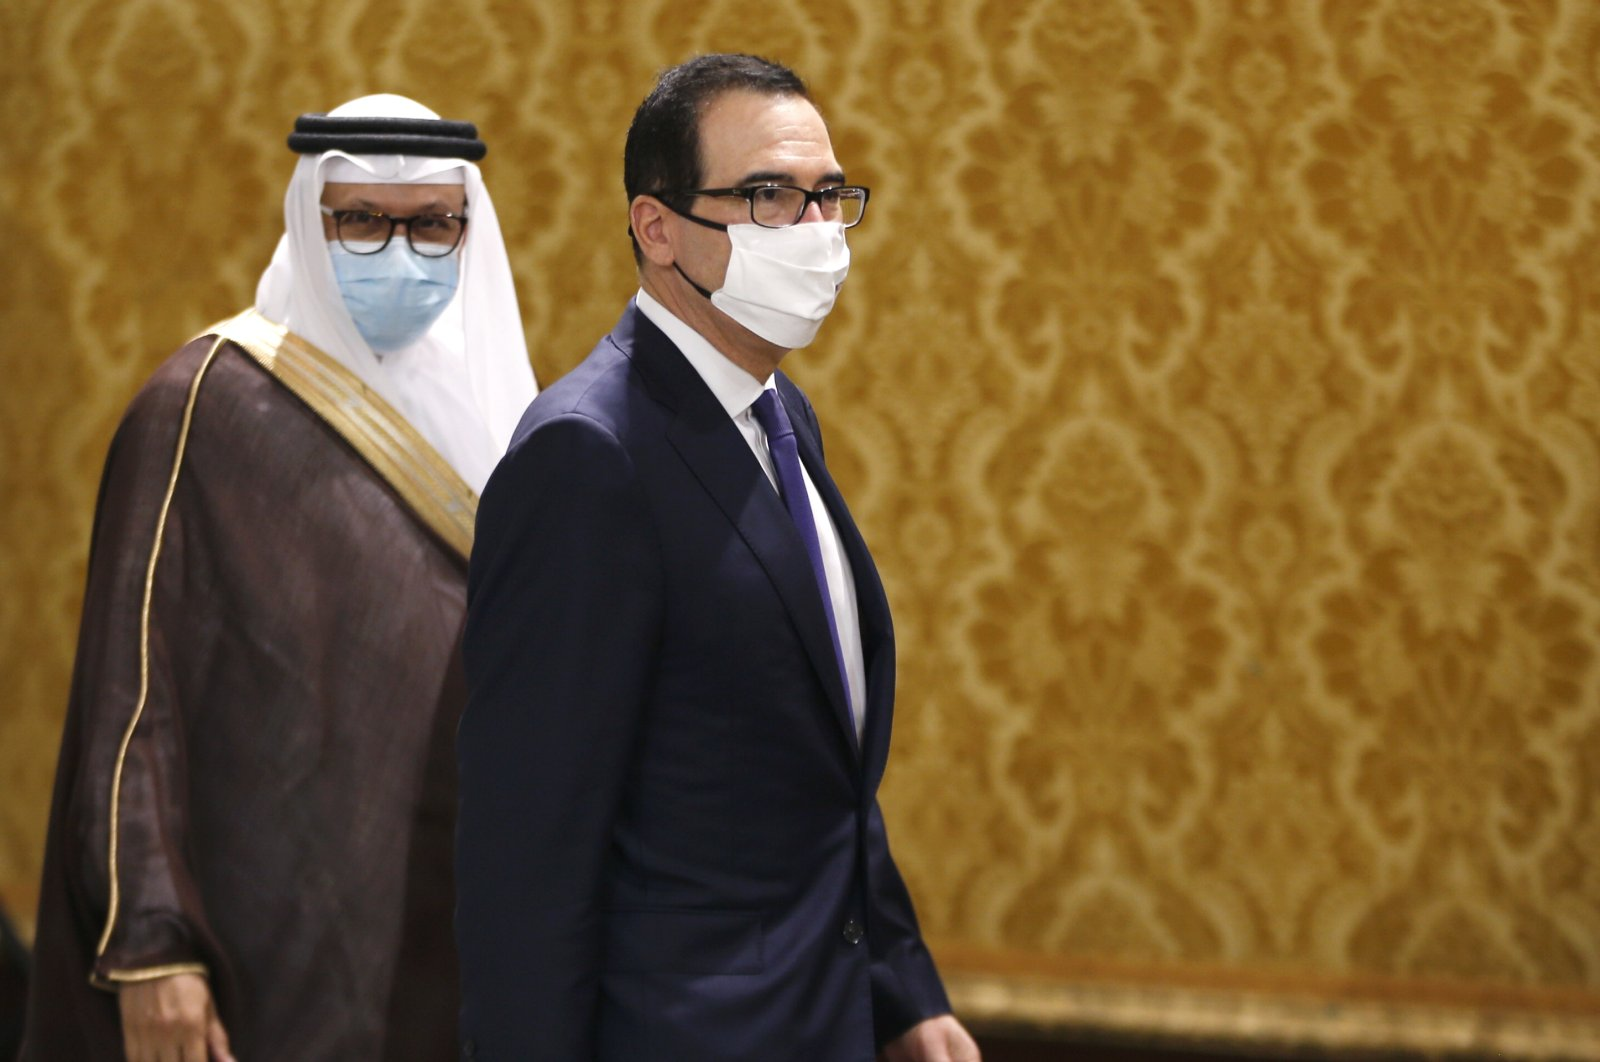 U.S. Treasury Secretary Steve Mnuchin walks after an Israeli delegation led by Israeli National Security Advisor Meir Ben Shabbat signed an agreement with Bahraini officials in Manama, Bahrain, Sunday, Oct. 18, 2020. (AP Photo)